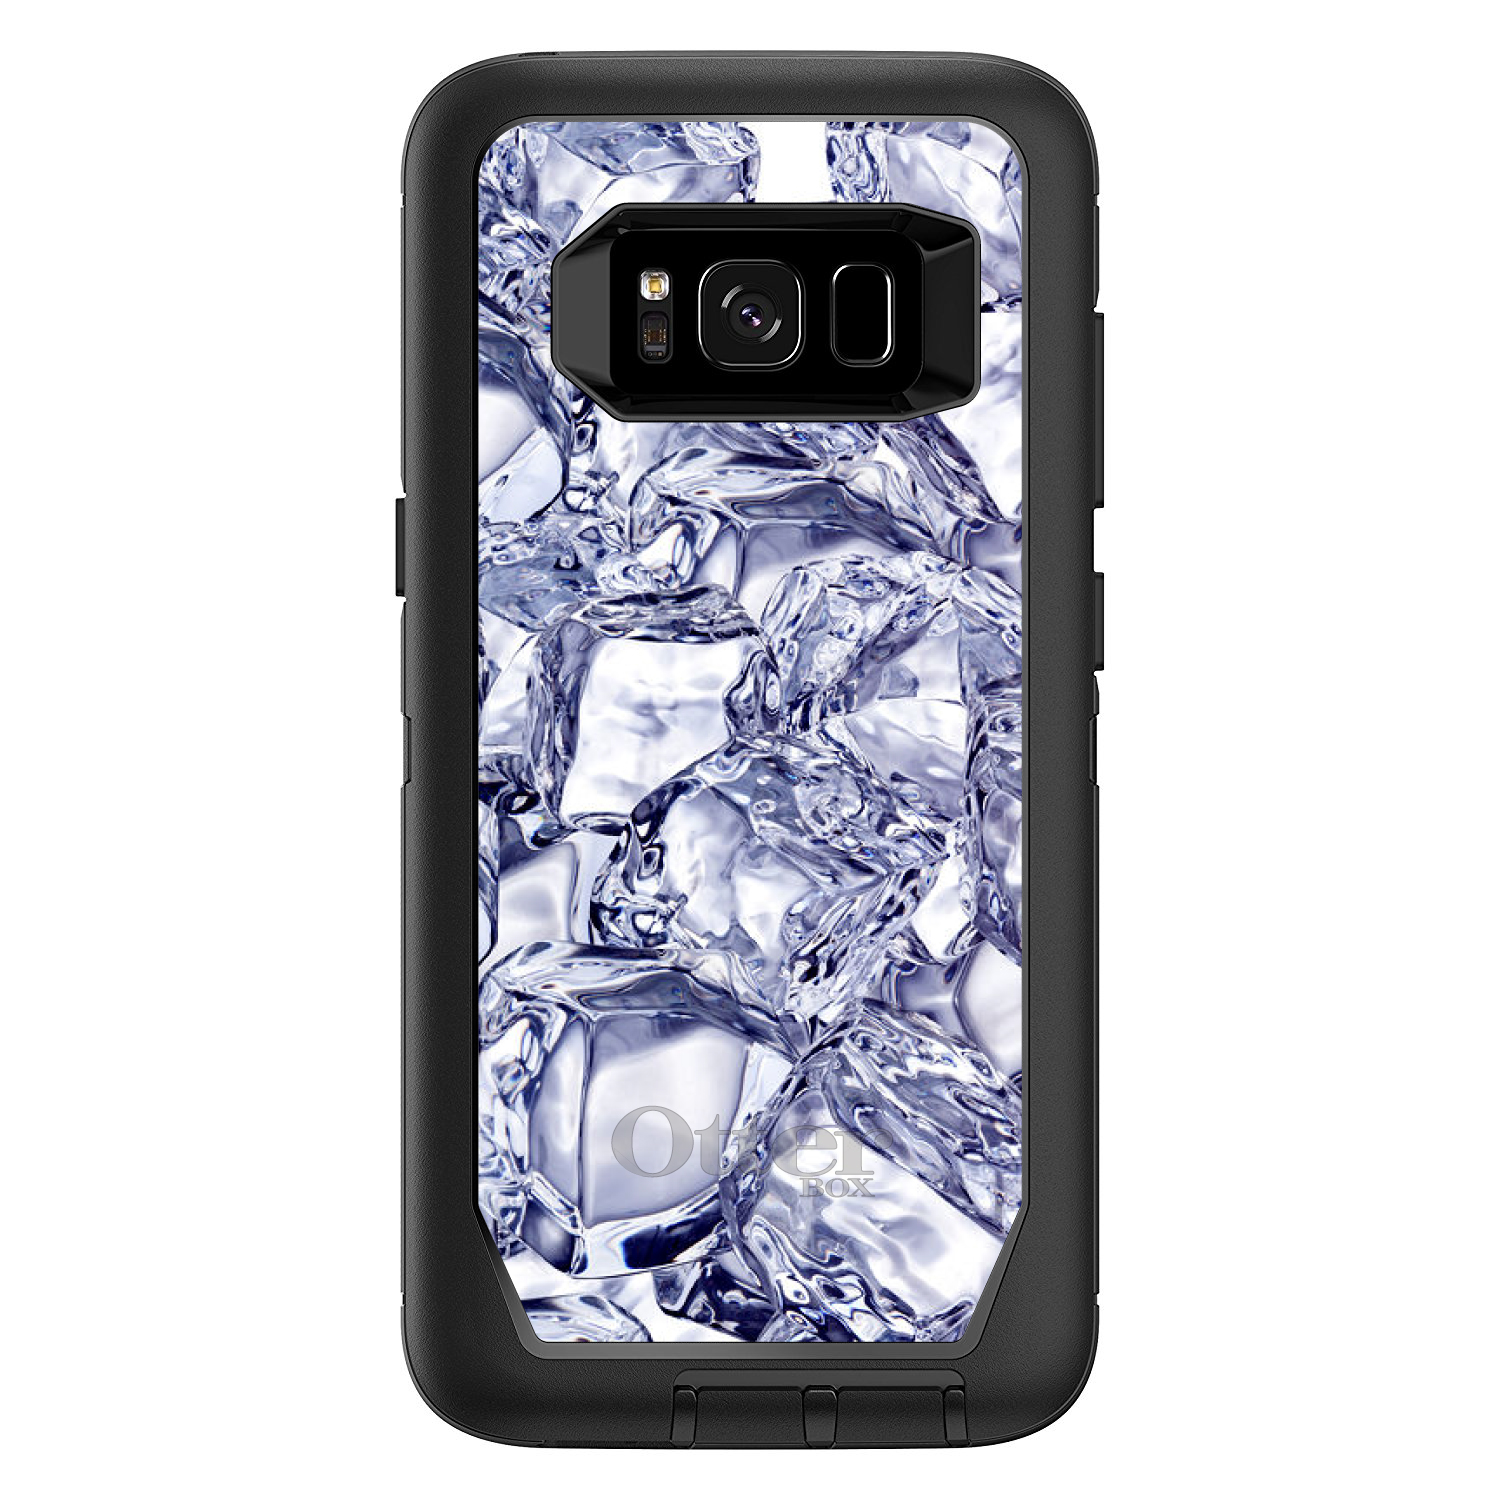 "DistinctInk™ Custom Black OtterBox Defender Series Case for Samsung Galaxy S8 (5.8"" Screen) - Crystal Clear Ice"